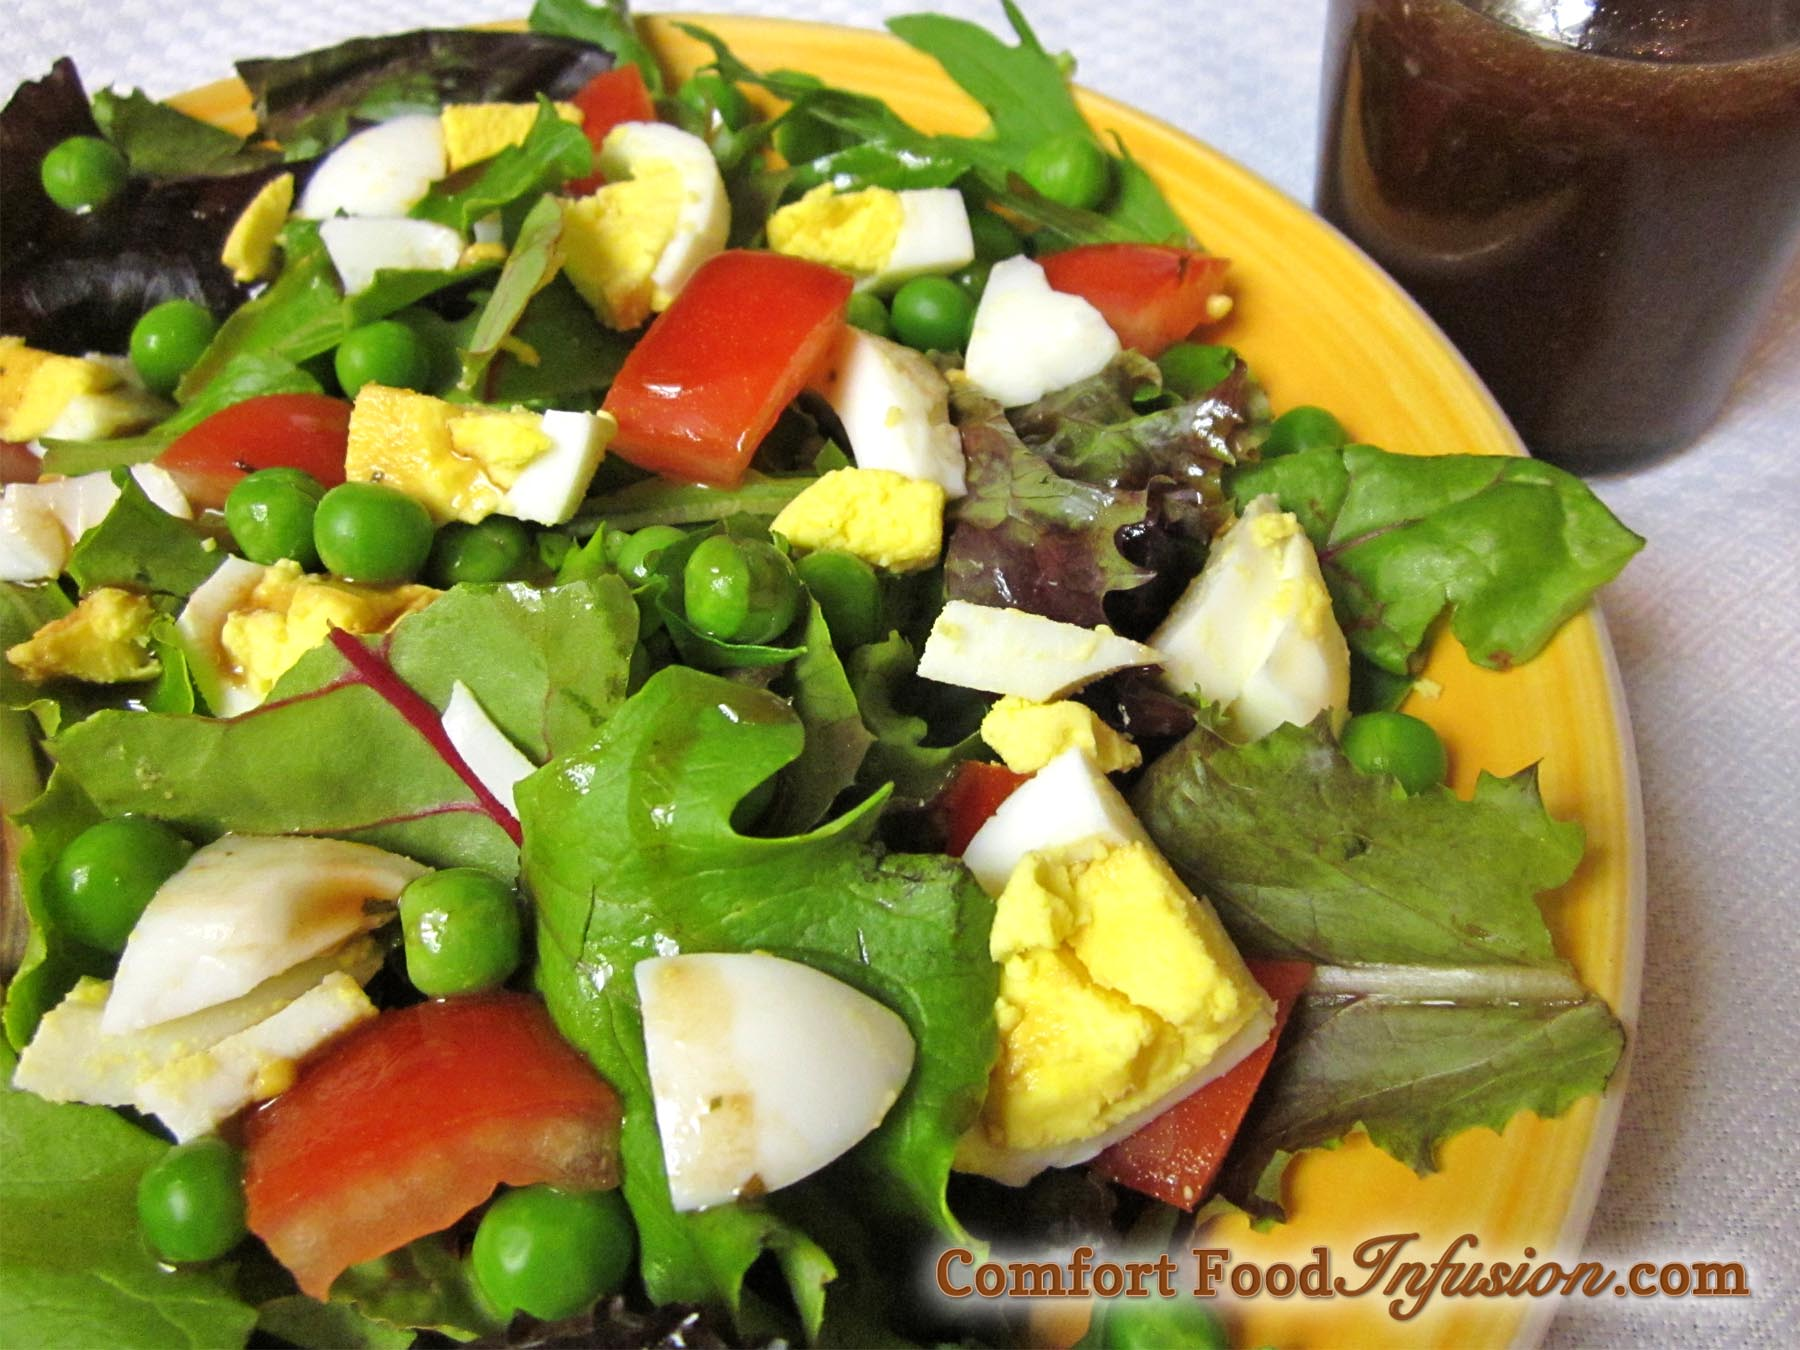 Mixed Greens and Egg Salad with Tarragon Vinaigrette